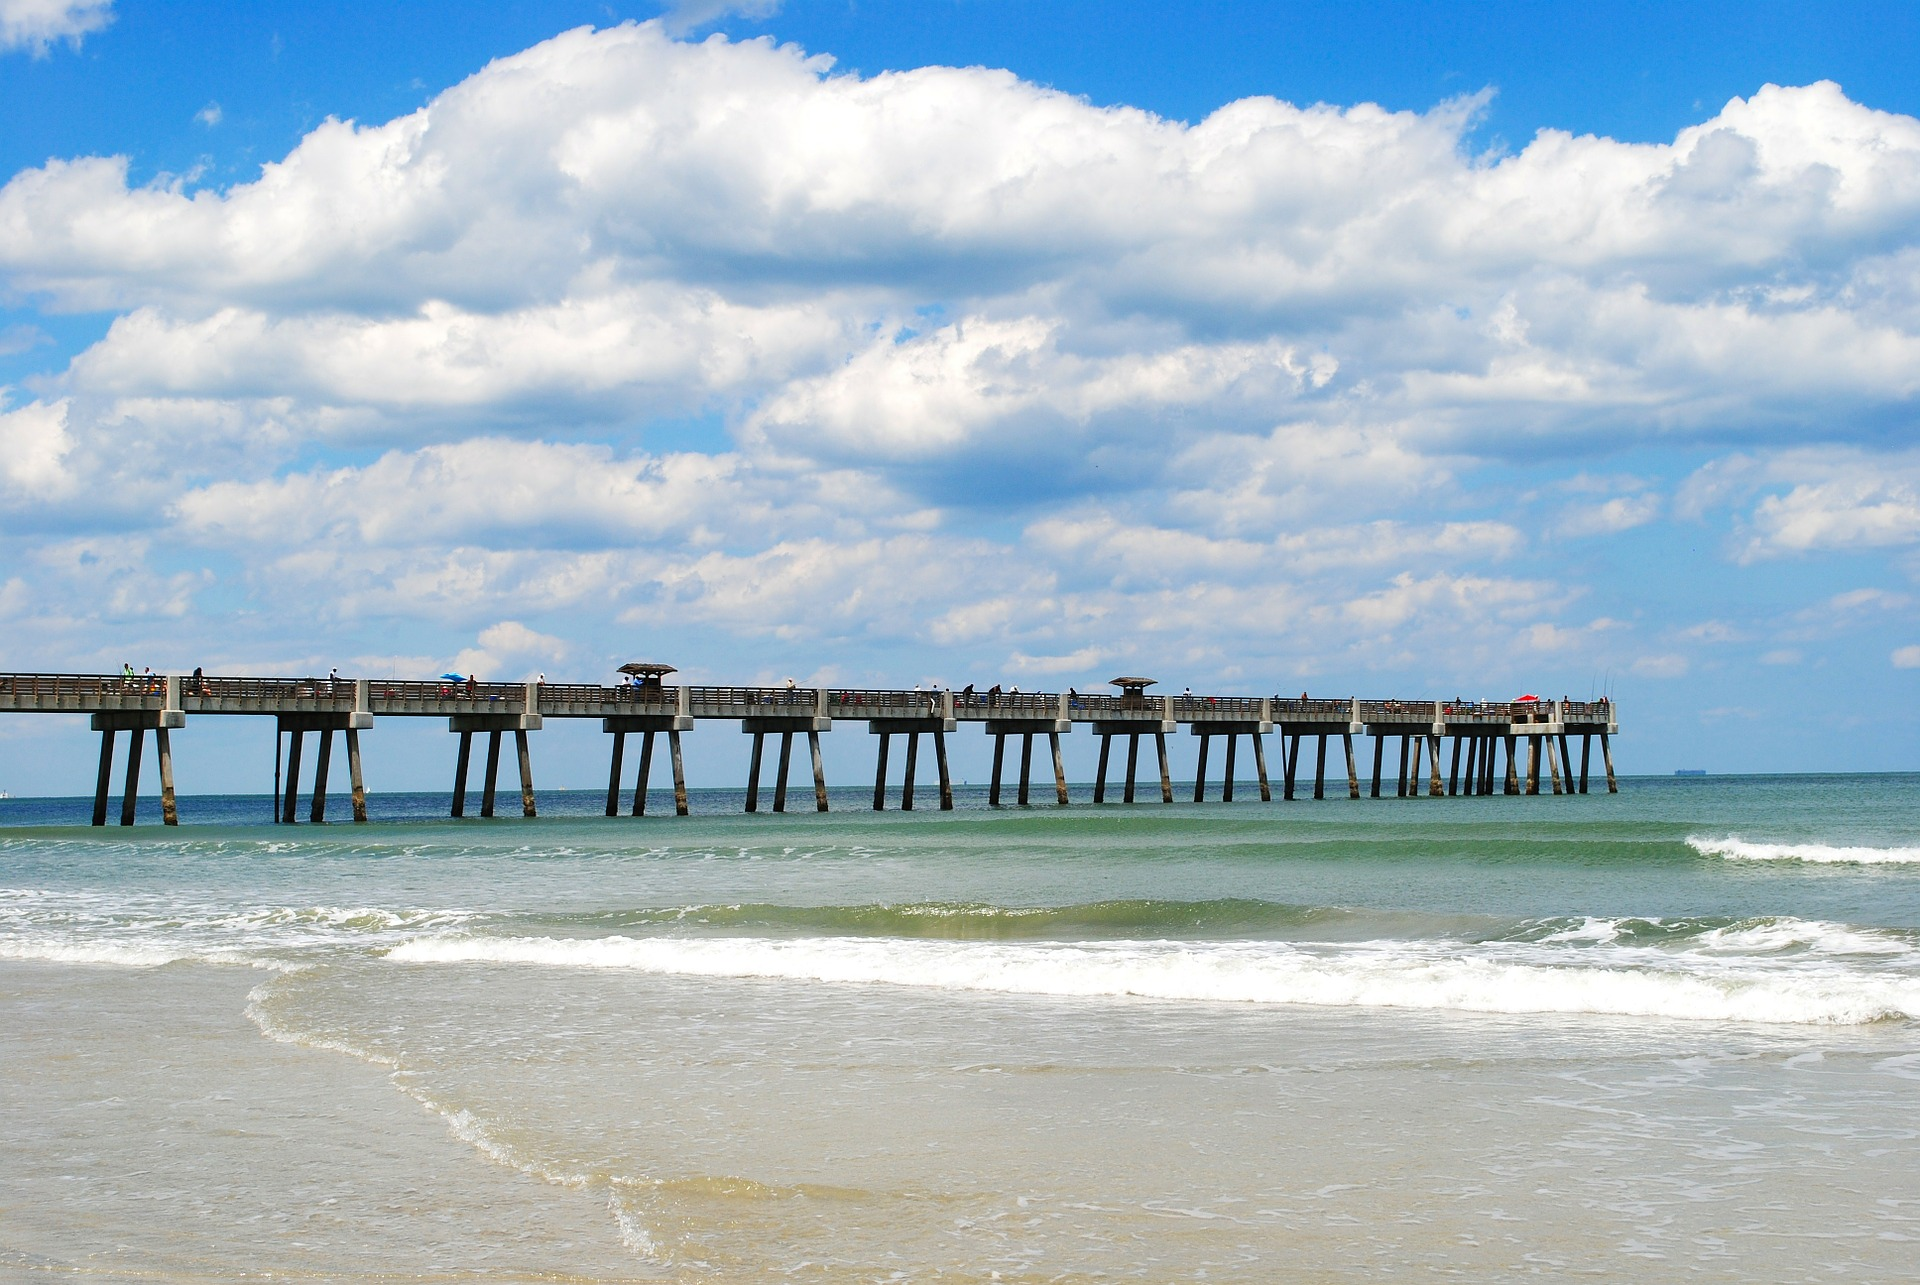 Moving to Jacksonville: Things to do on the beach